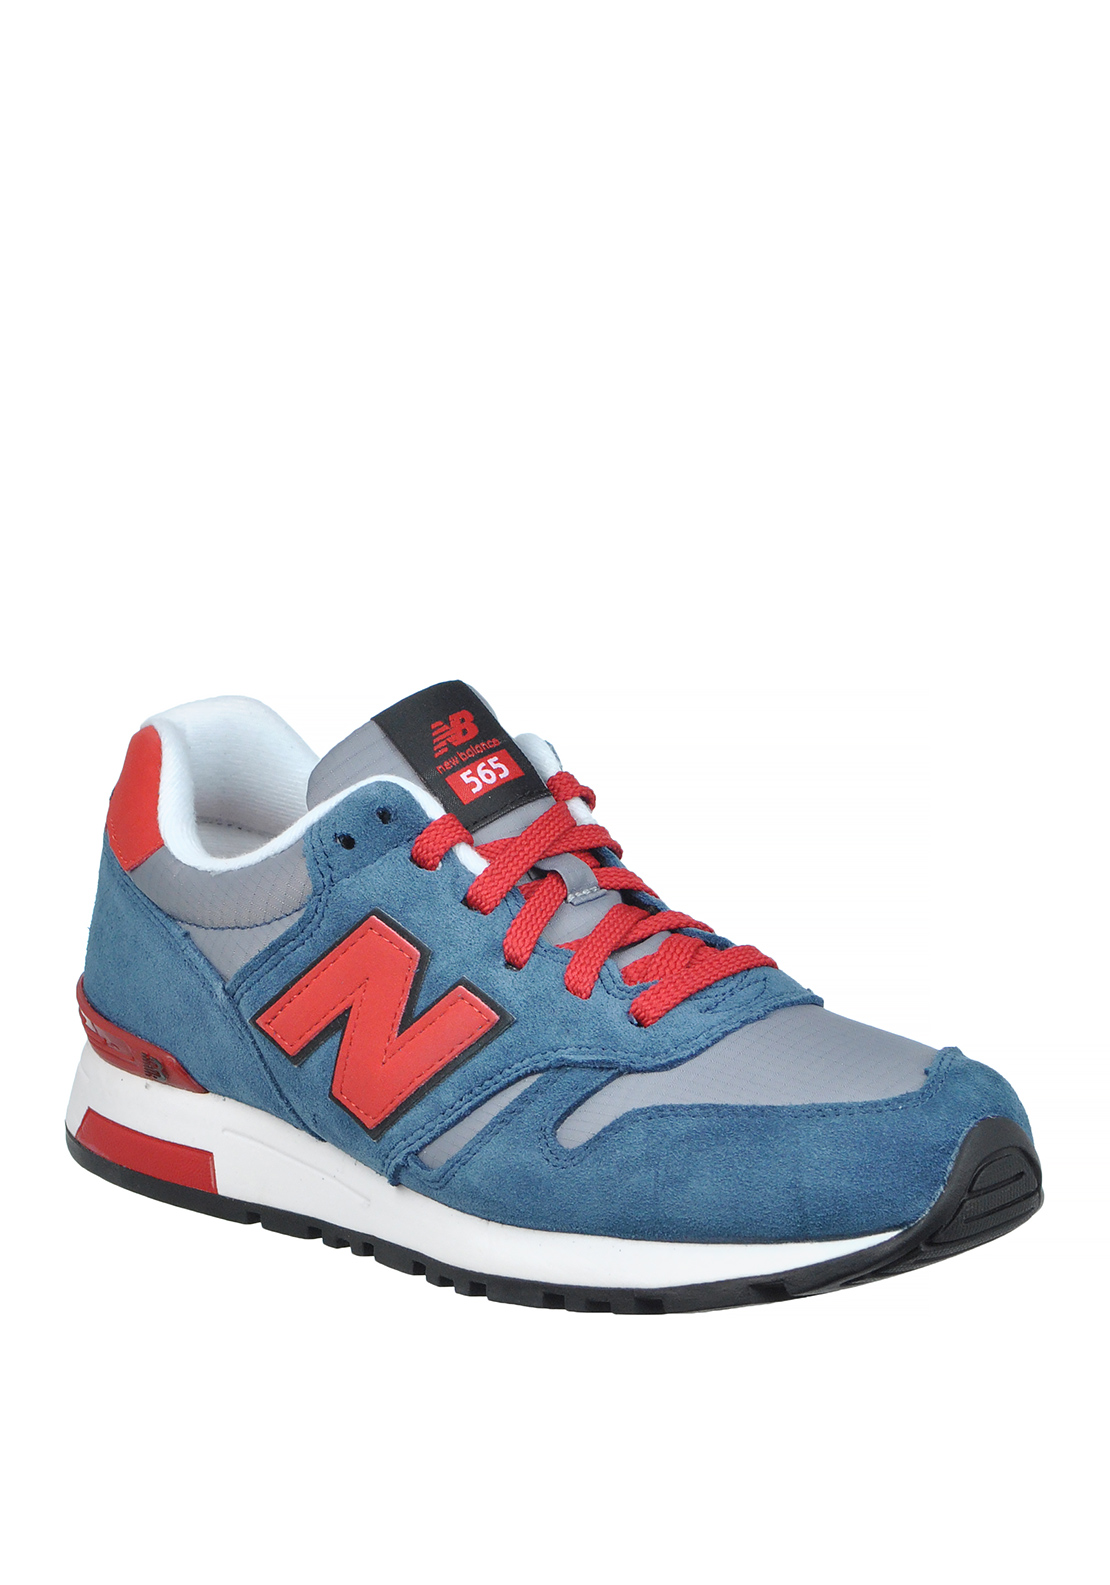 New Balance Mens 565 Fashion Runners, Grey